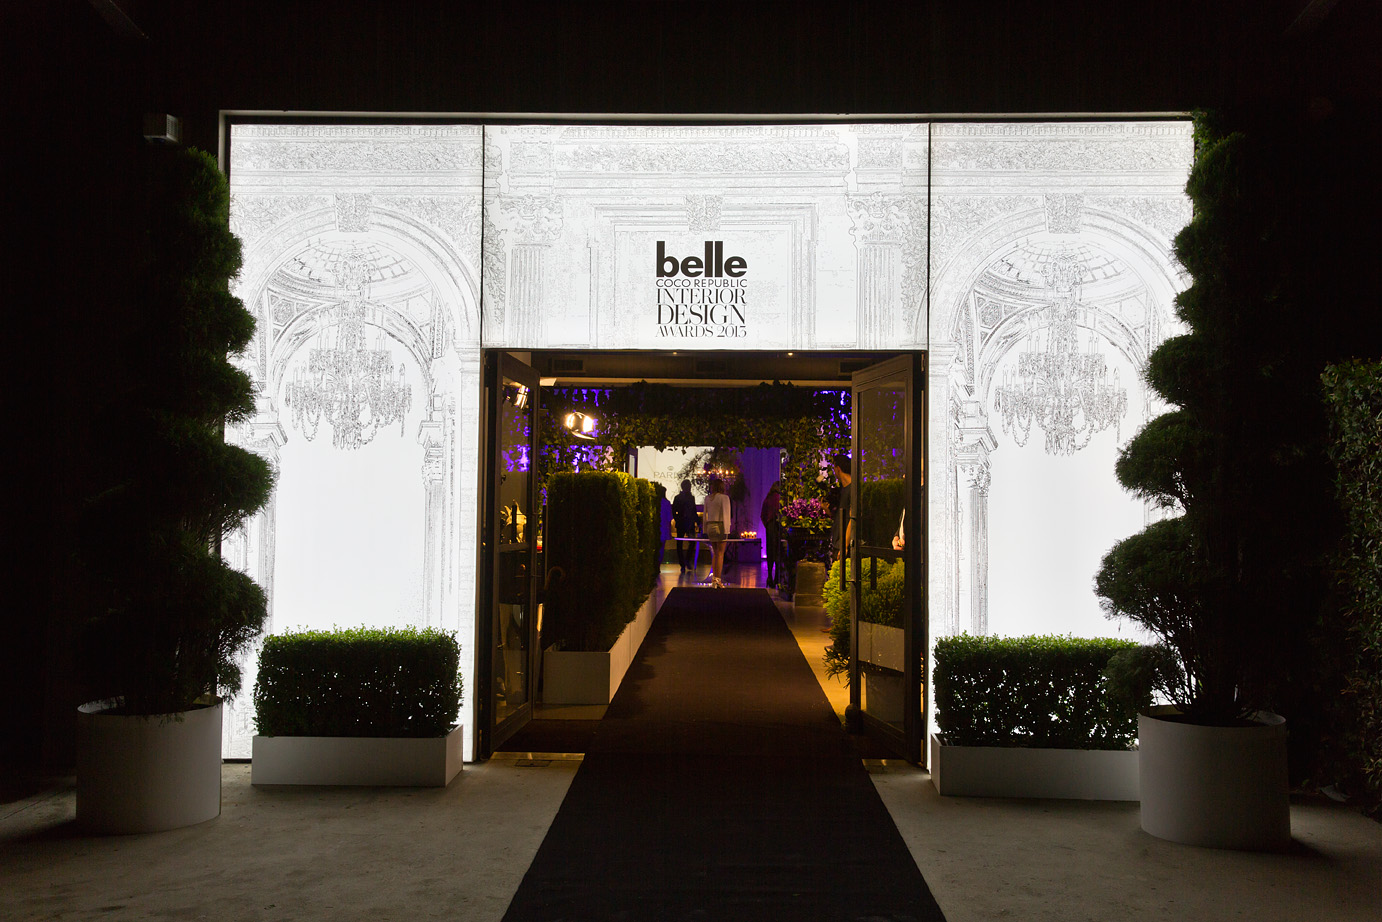 Winners And Photos From Last Nights Belle Coco Republic Interior